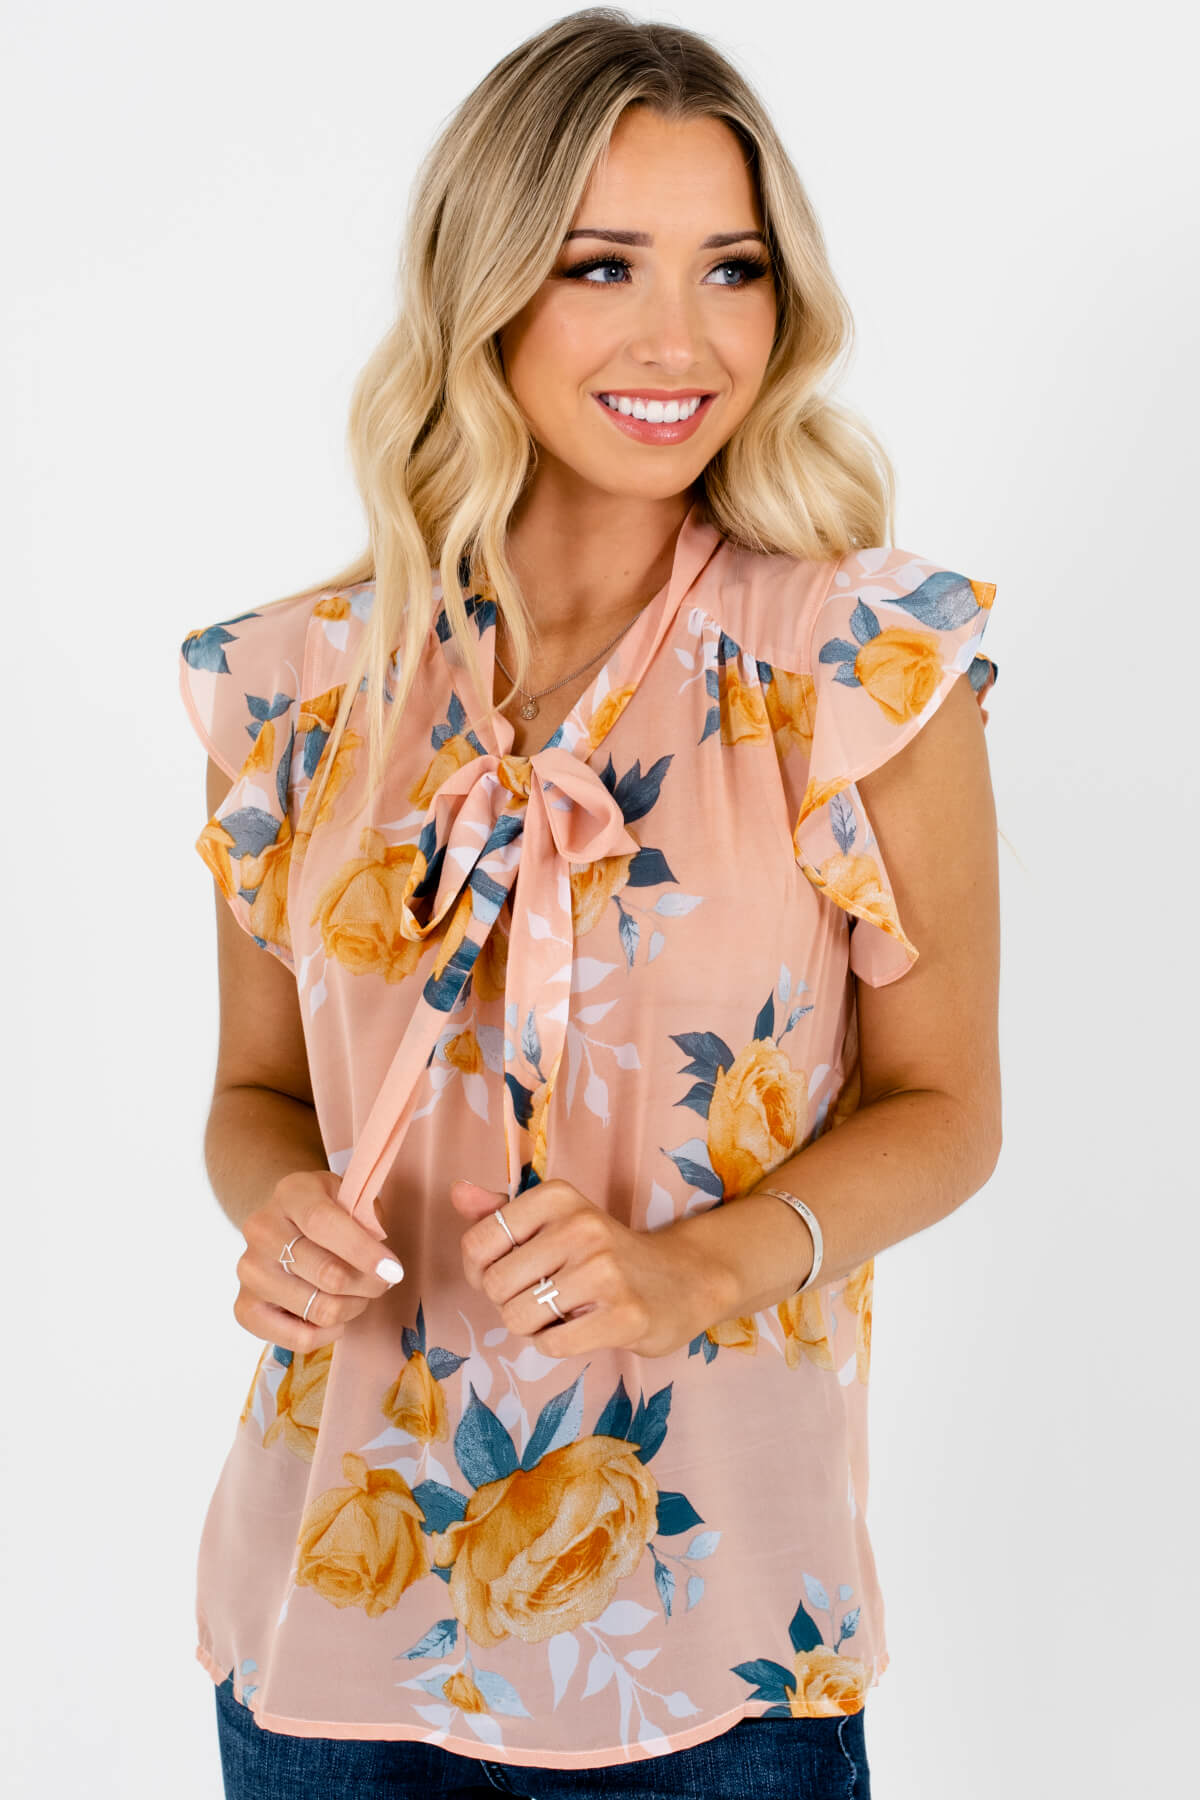 Peachy Pink Floral Pussybow Tie Ruffle Sleeve Blouses for Women